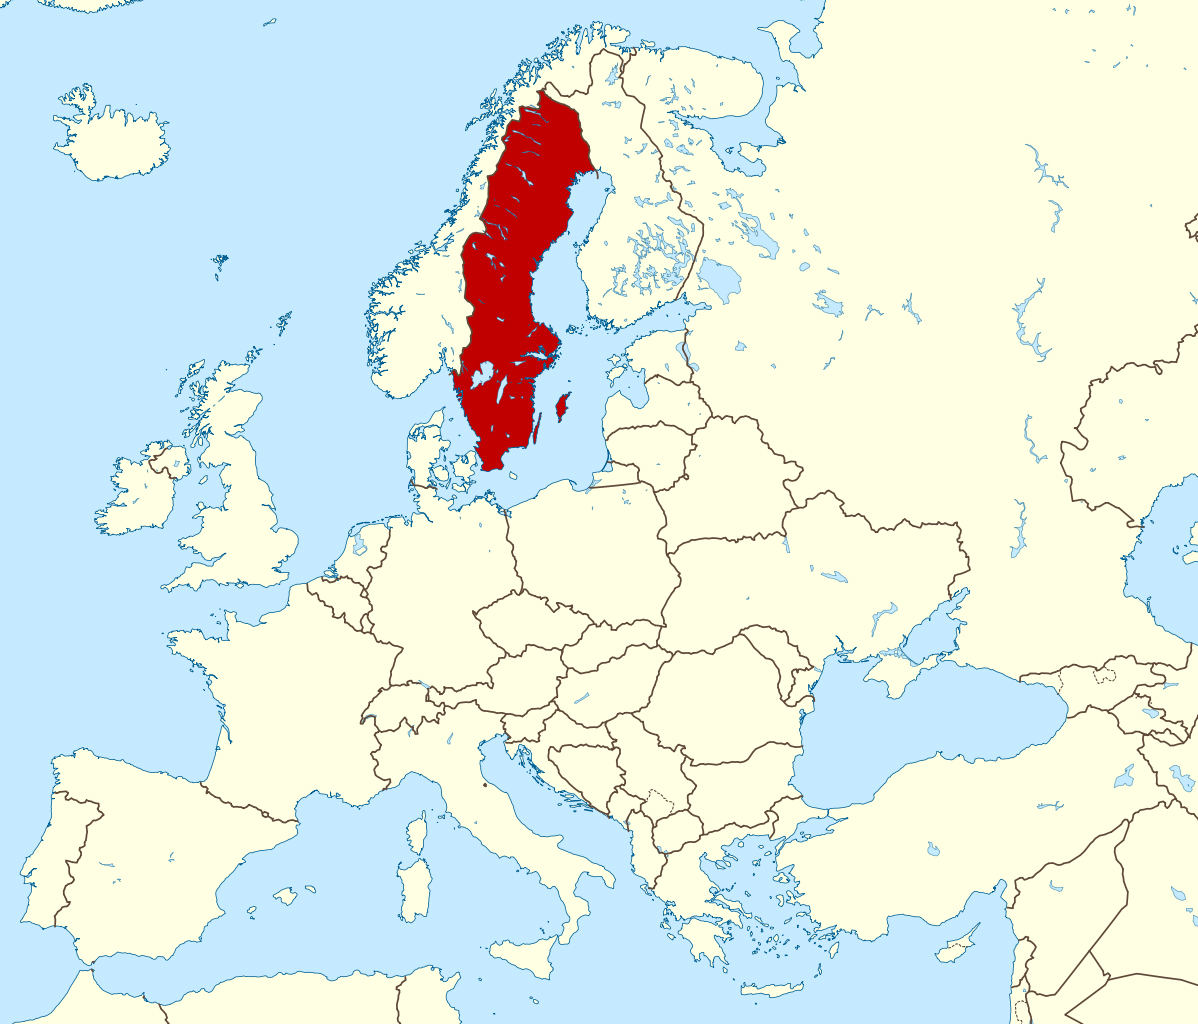 where is sweden located on the map